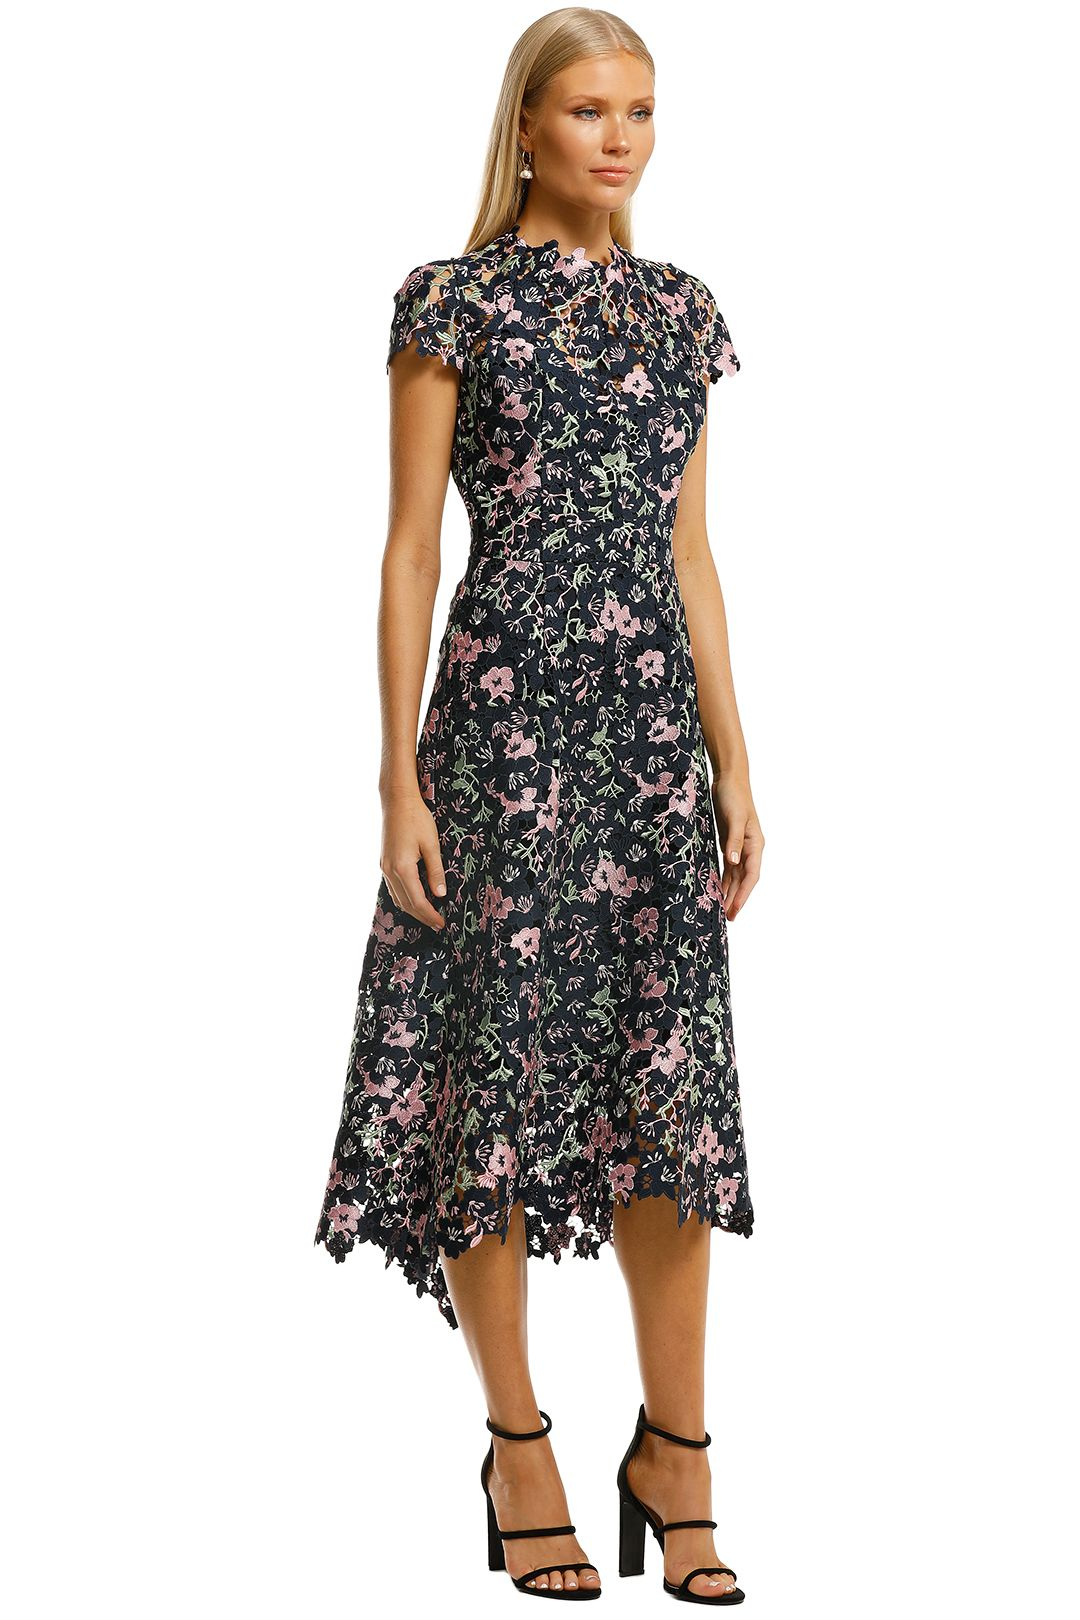 Moss-and-Spy-Birdy-Dress-Floral-Side